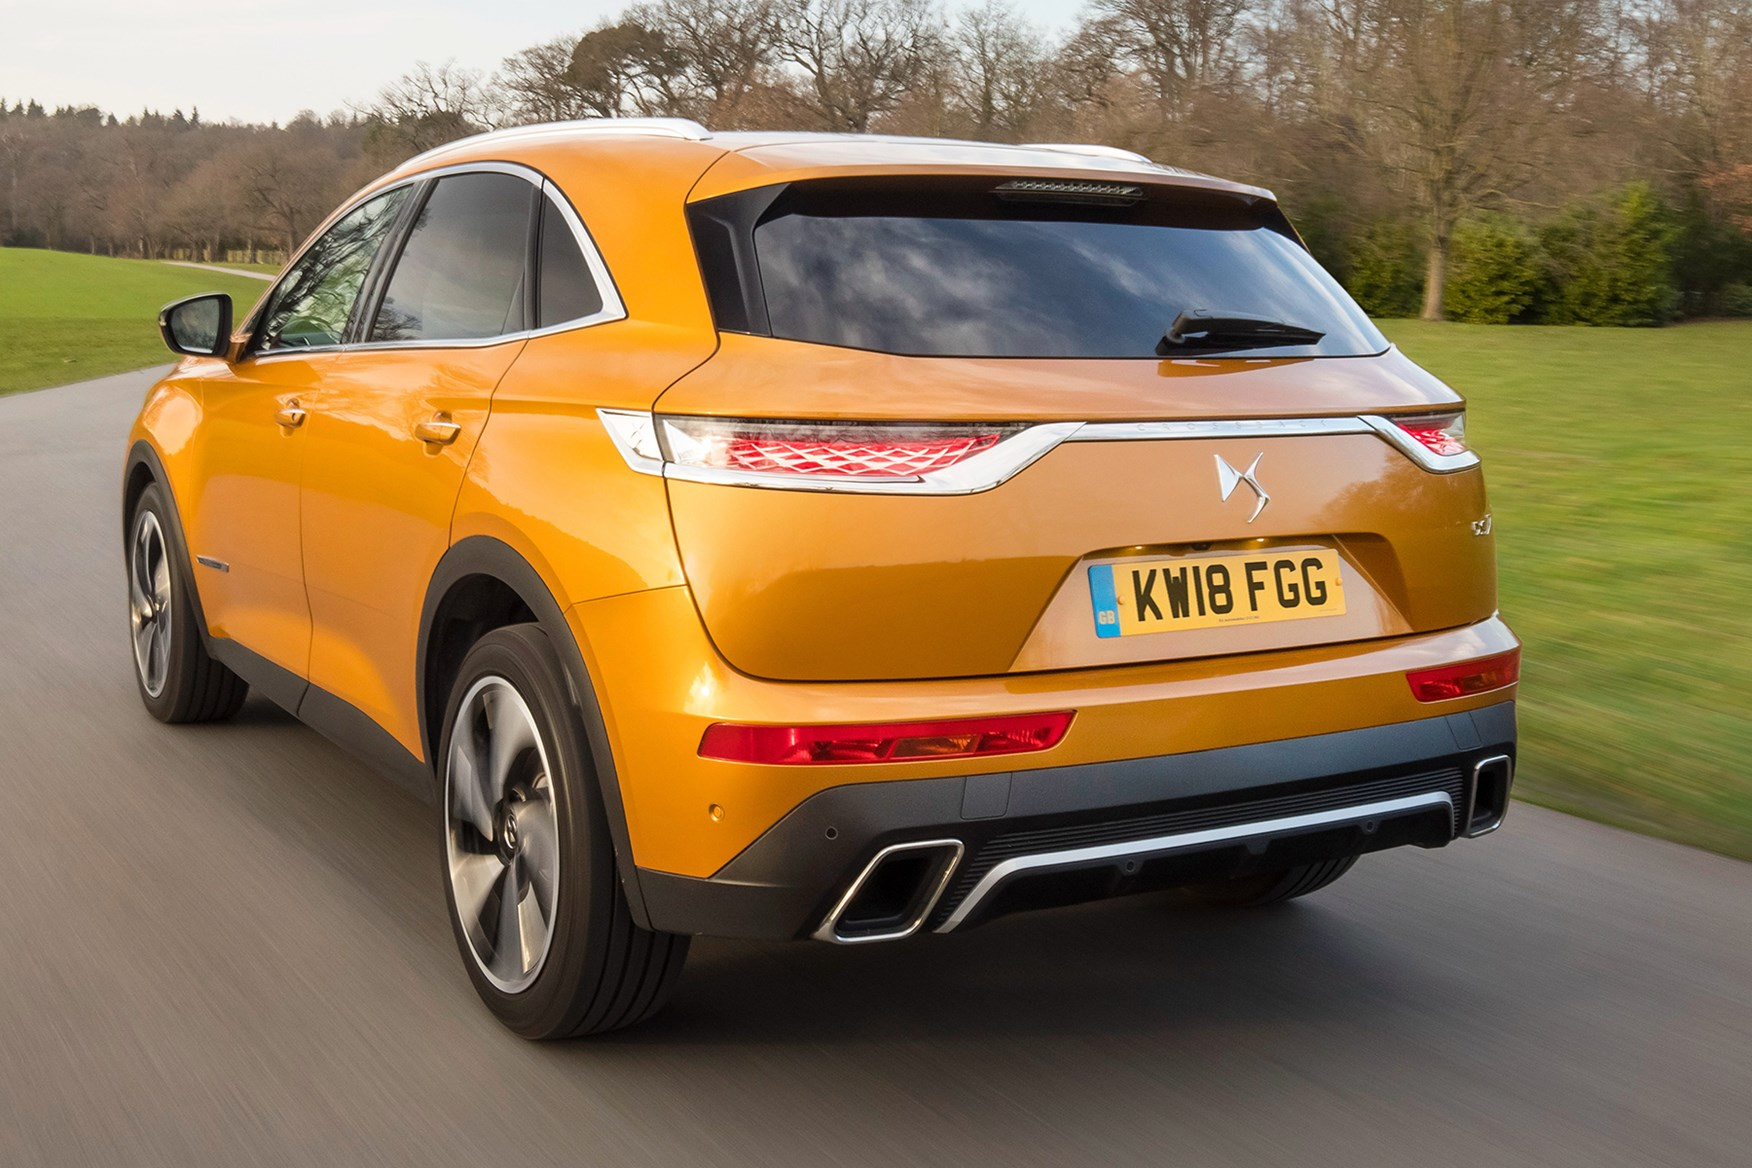 Range Rover Evoque Interior >> DS 7 Crossback review: summary | Parkers